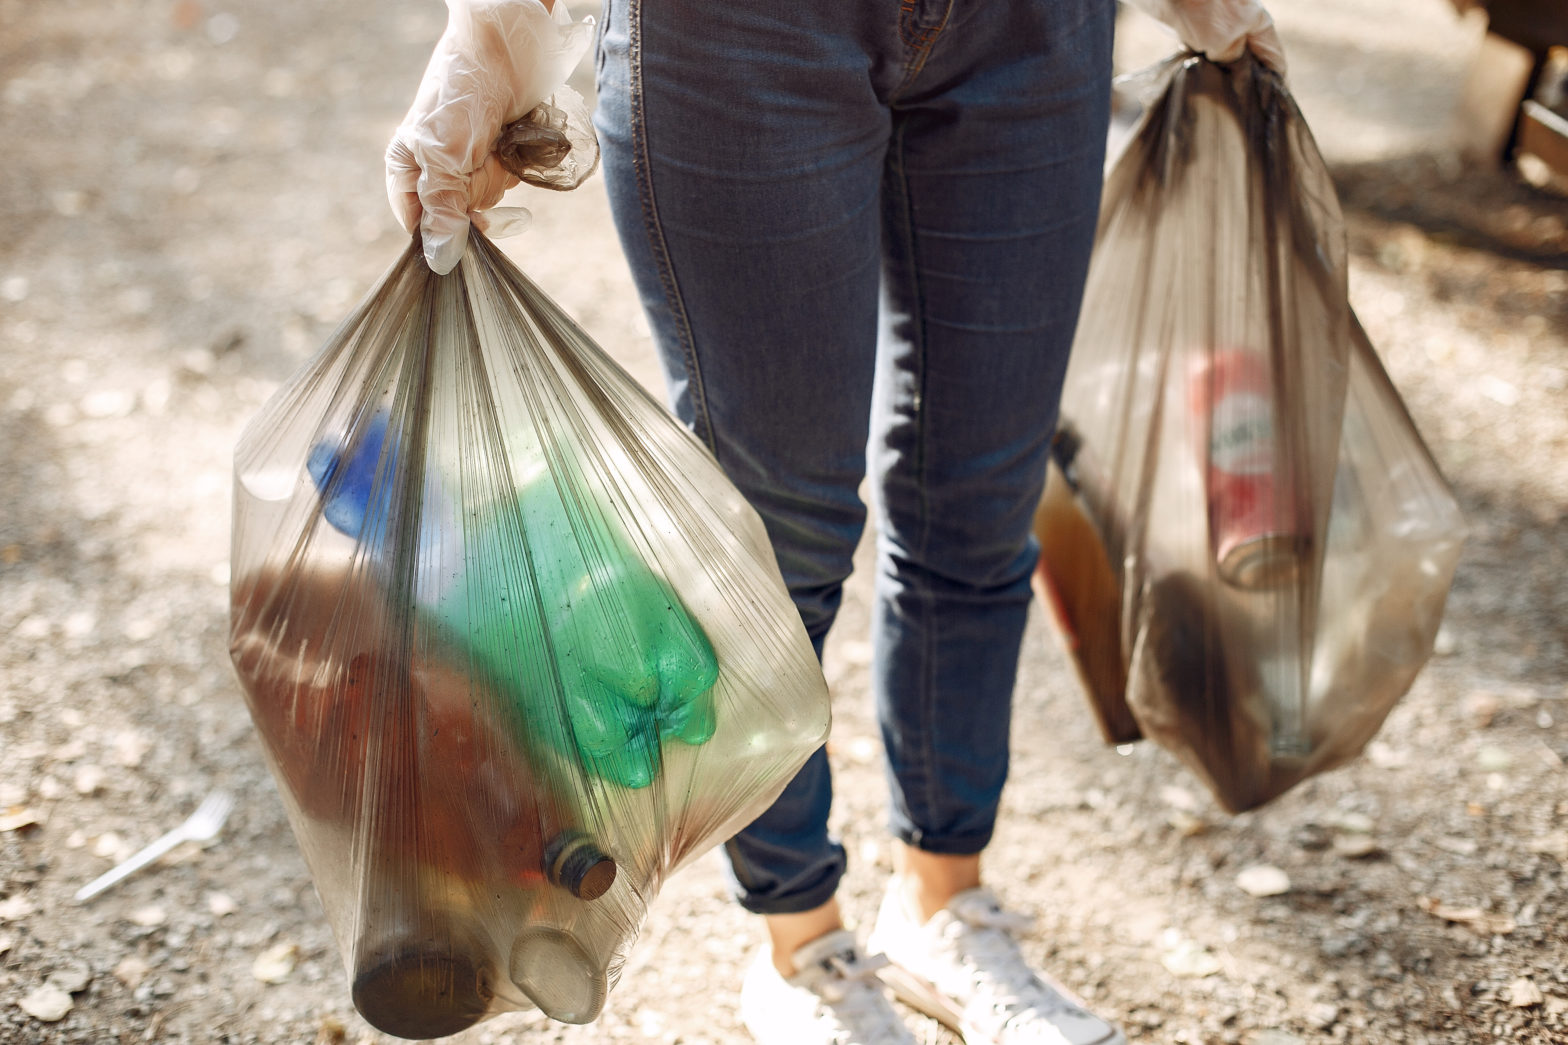 girl collects garbage in garbage bags in park Porteo